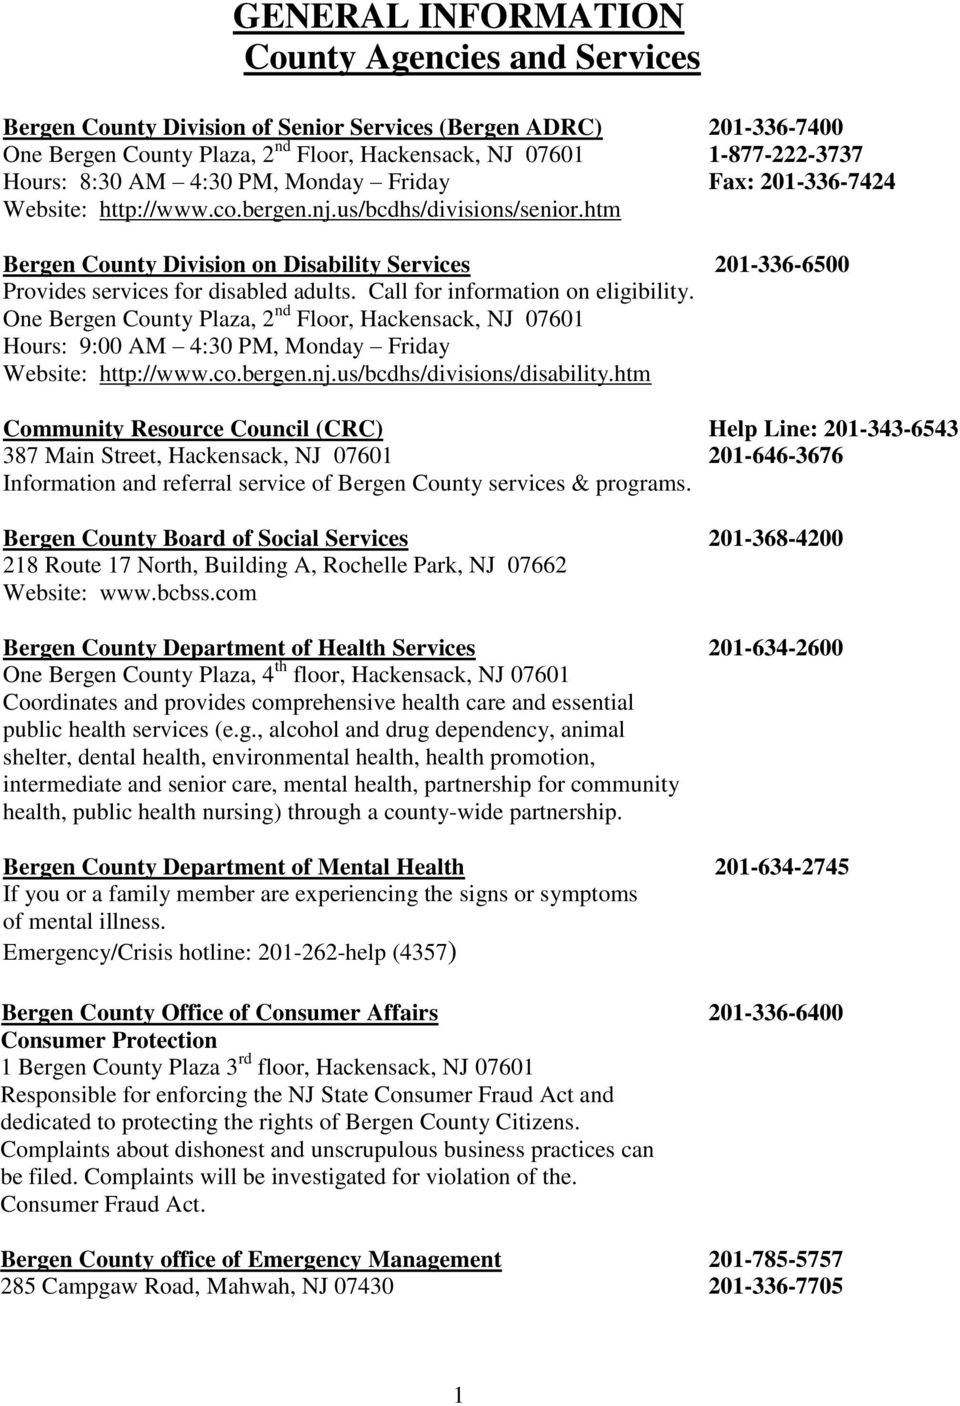 Bergen County ADRC Key Services Guide For Older Adults and